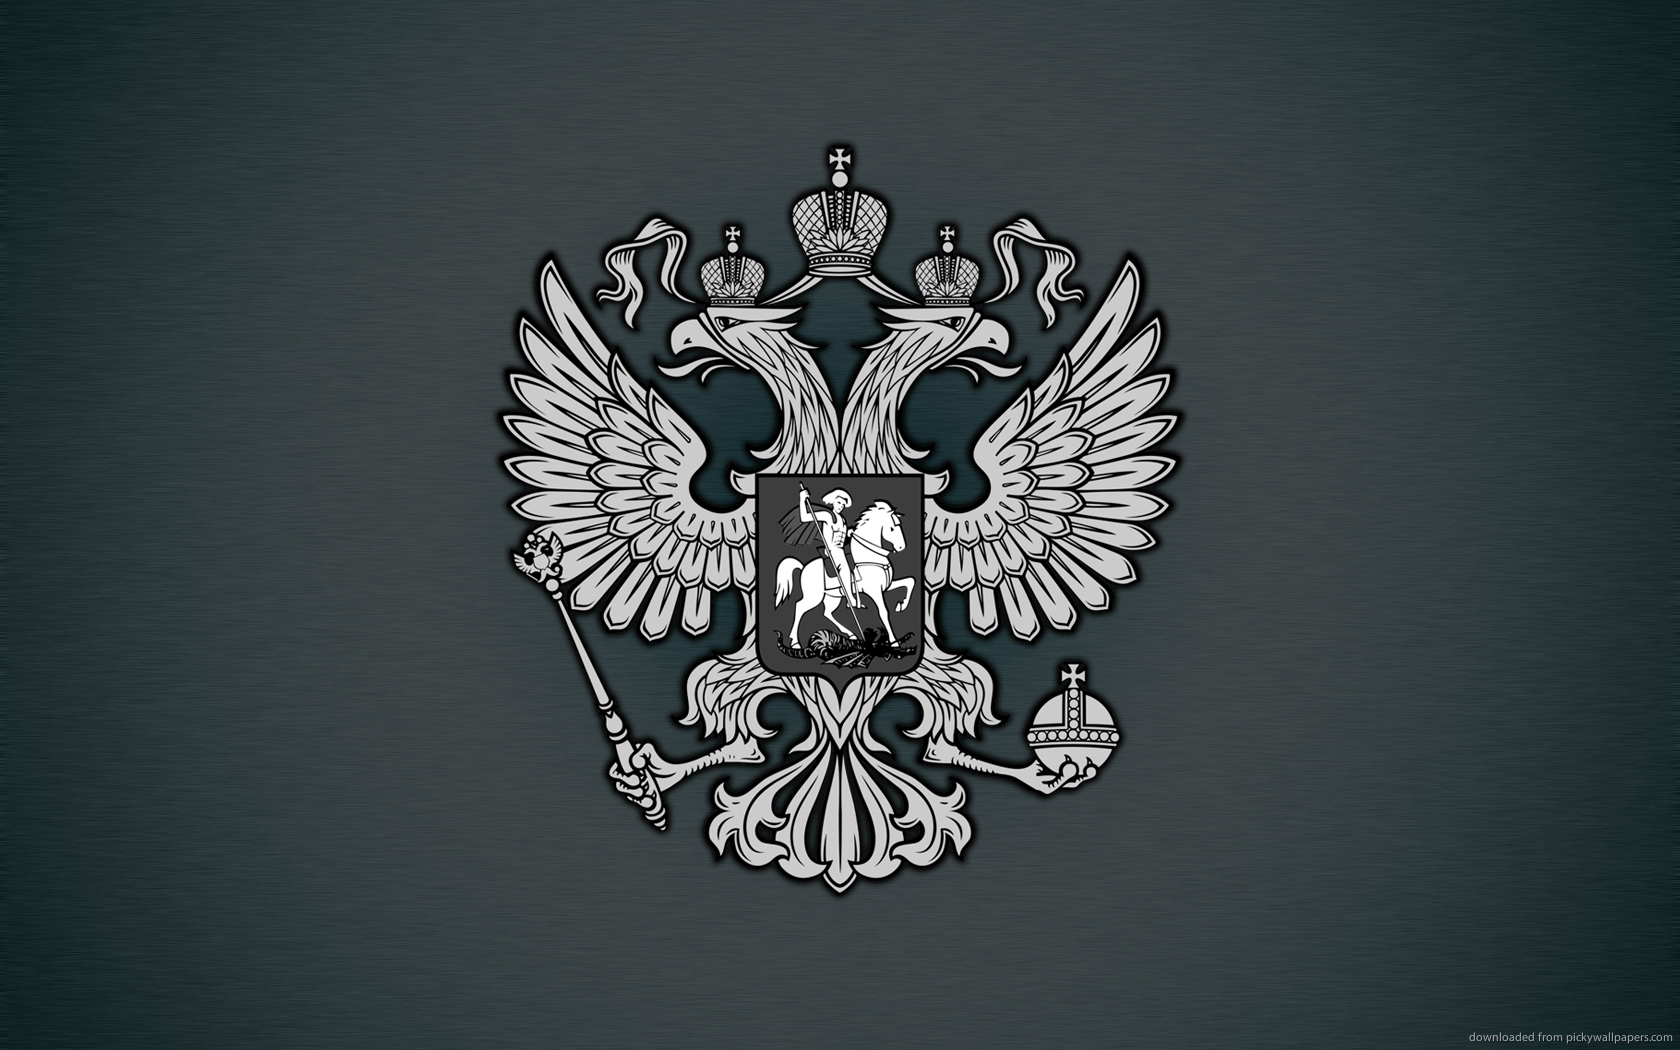 MP EU4 Thug Life (Yiah) Russian-Federation-coat-of-arms-russia-27345091-1680-1050